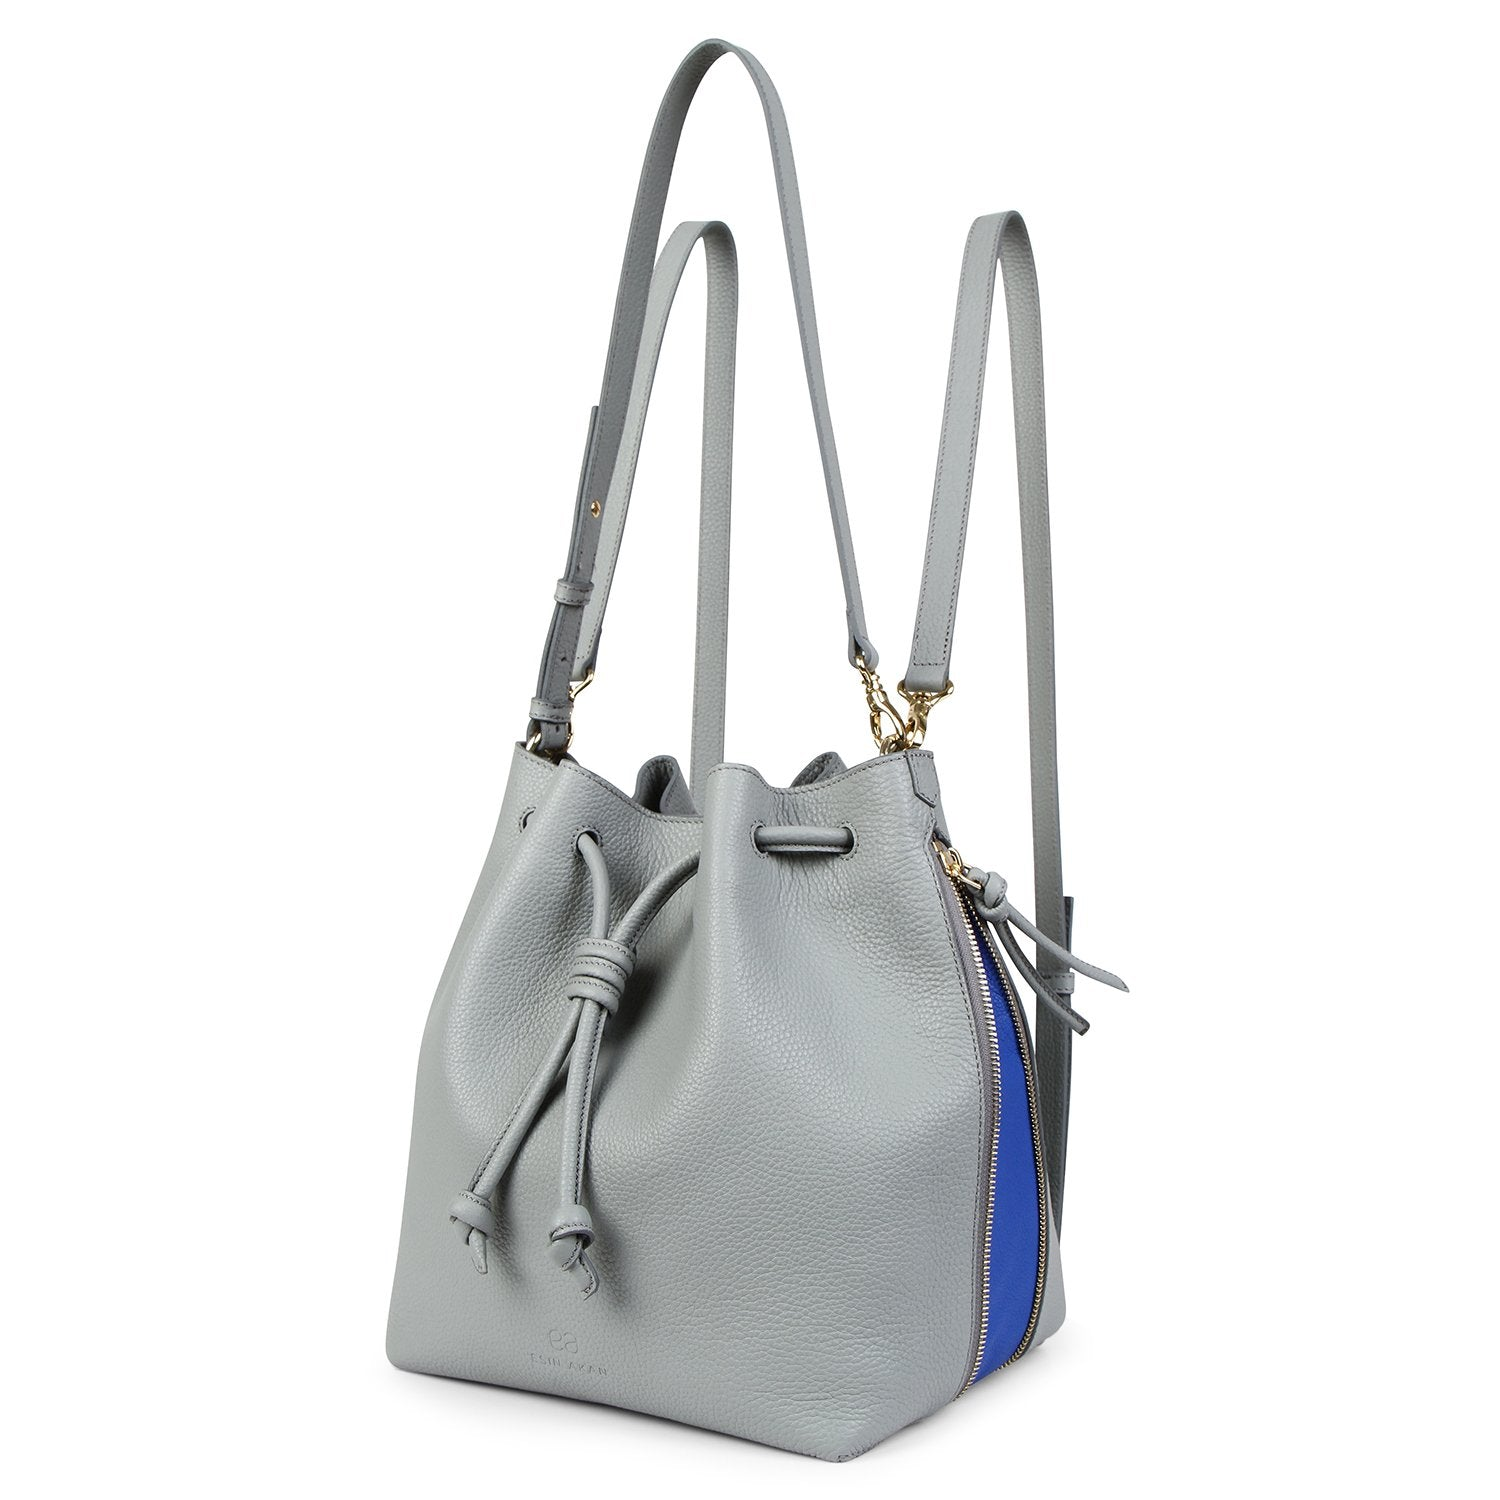 A convertible laptop size womens leather backpack in light grey that could be used as a crossbody as well as a bucket bag, front image.